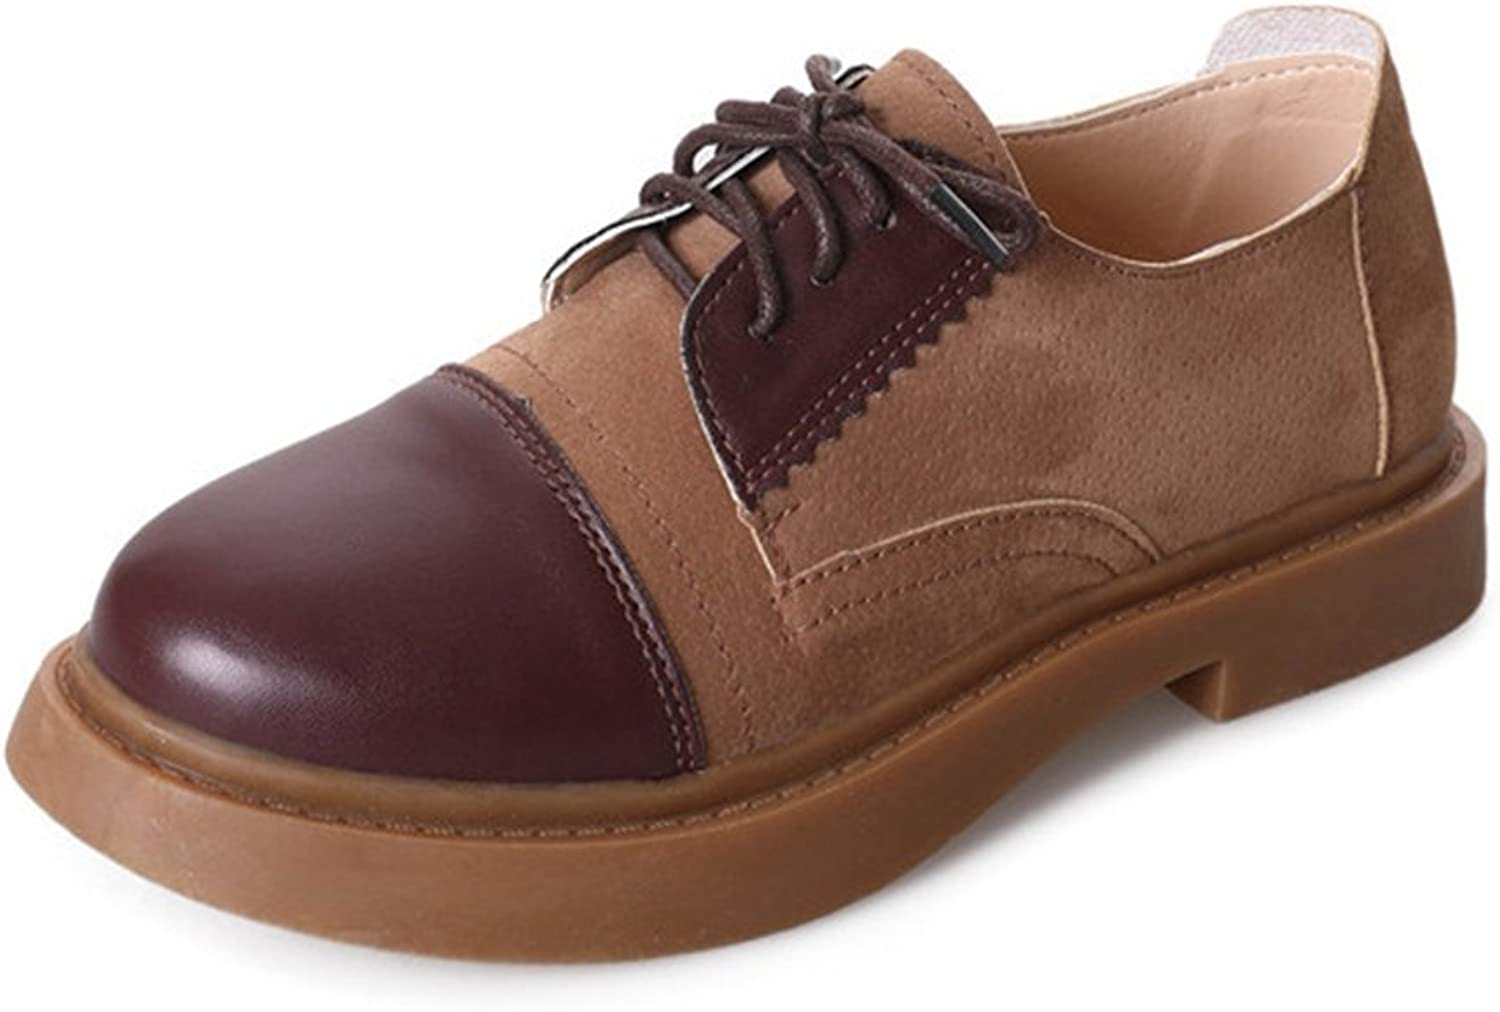 T-JULY Women's Oxfords shoes - Western Lace-up Low Wedge Round Toe Two Tone Casual shoes